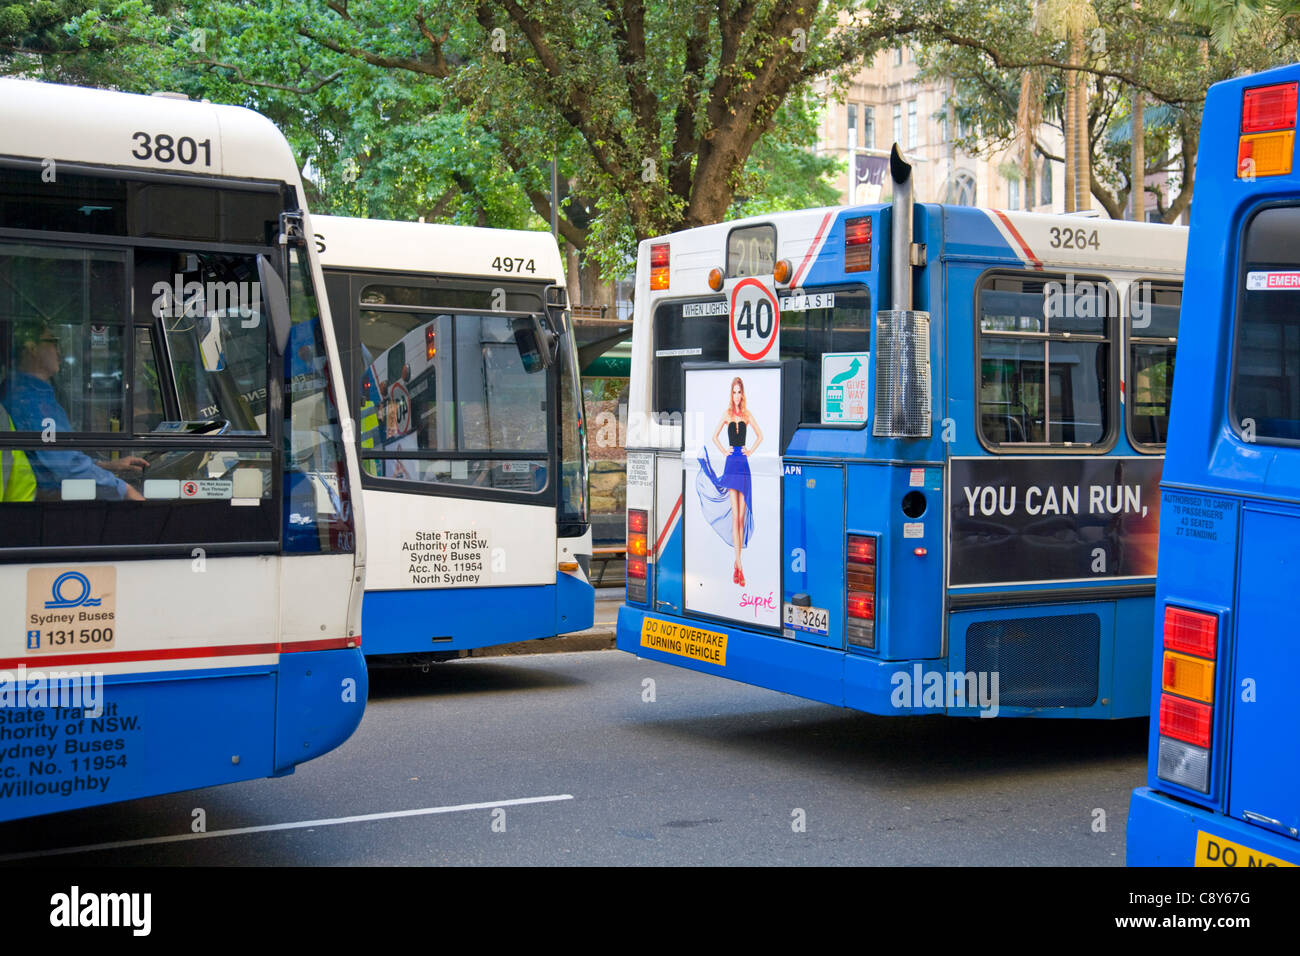 traffic congestion in sydney with many buses competing for road space,australia - Stock Image